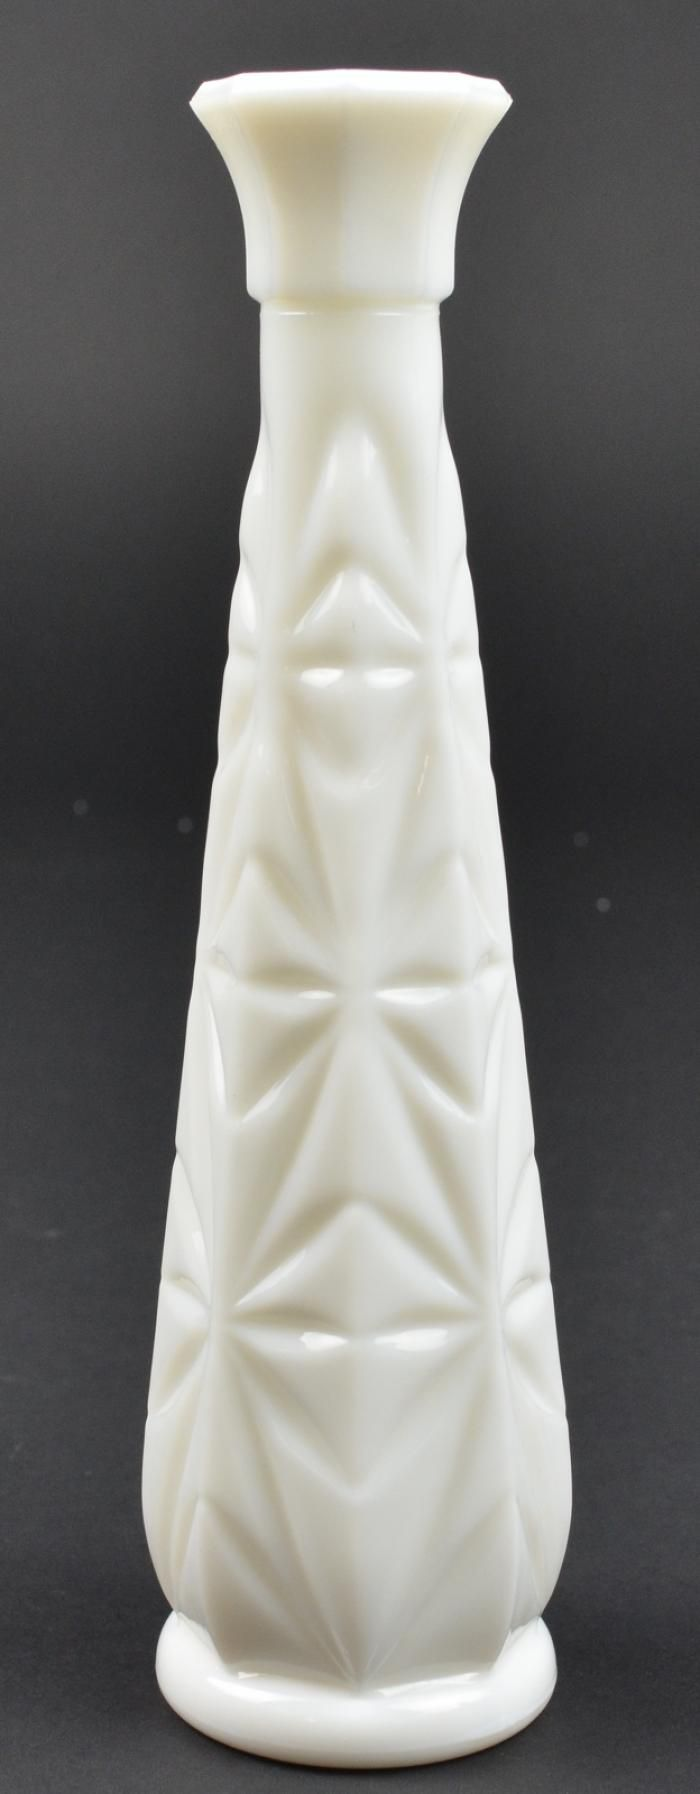 Milk glass vases value hoosier glass starburst milk glass milk glass vases value hoosier glass starburst milk glass pattern bud vase floridaeventfo Gallery